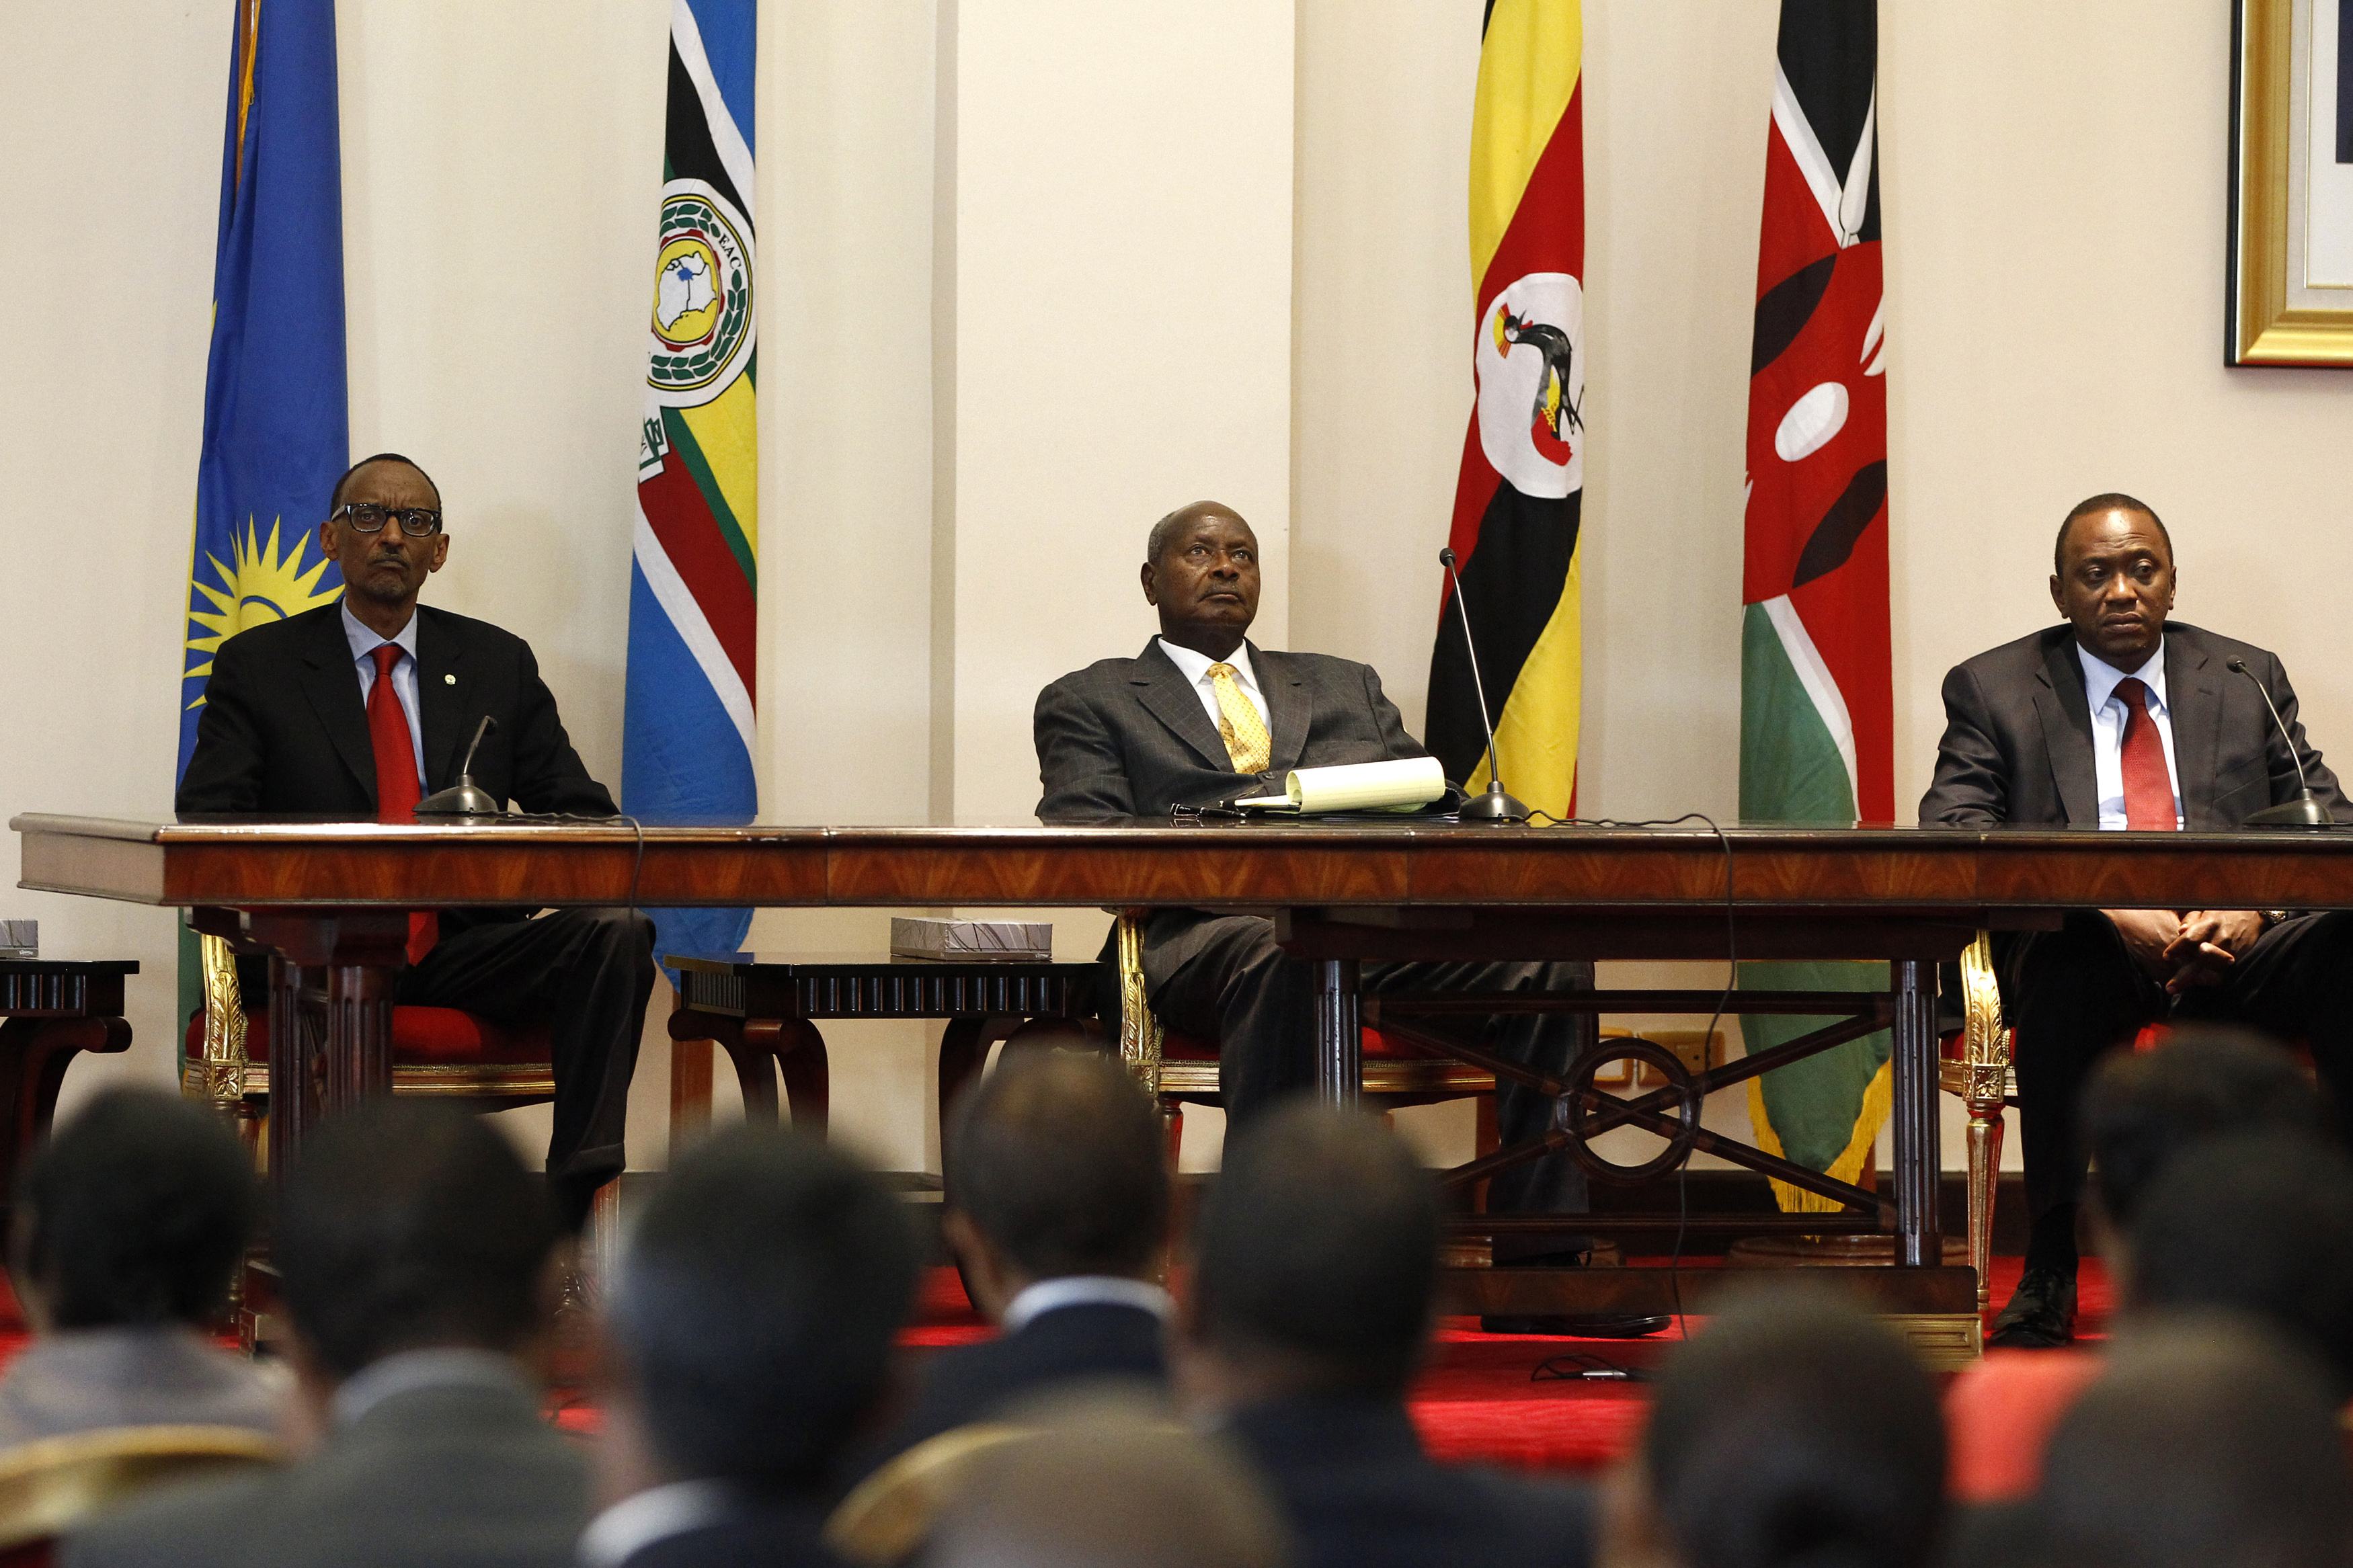 Three East African presidents, (from R) Uhuru Kenyata of Kenya, Yoweri Museveni of Uganda and Paul Kagame of Rwanda, hold a joint news conference soon after their meeting in Entebbe, 36km (22 miles) southwest of the capital Kampala, June 25, 2013. Uganda has agreed to a plan to build a pipeline from its oilfields to a new port being developed on Kenya's northern coast, Ugandan Foreign Minister Sam Kutesa said on Tuesday, enabling crude exports and boosting its oil industry. Another project agreed by the presidents of Uganda, Kenya and Rwanda, who all met in the Ugandan capital, will involve extending to Uganda and Rwanda an existing pipeline running from Kenya's Mombasa port that now stops inside Kenya.  REUTERS/James Akena (UGANDA - Tags: ENERGY POLITICS) - RTX110K8